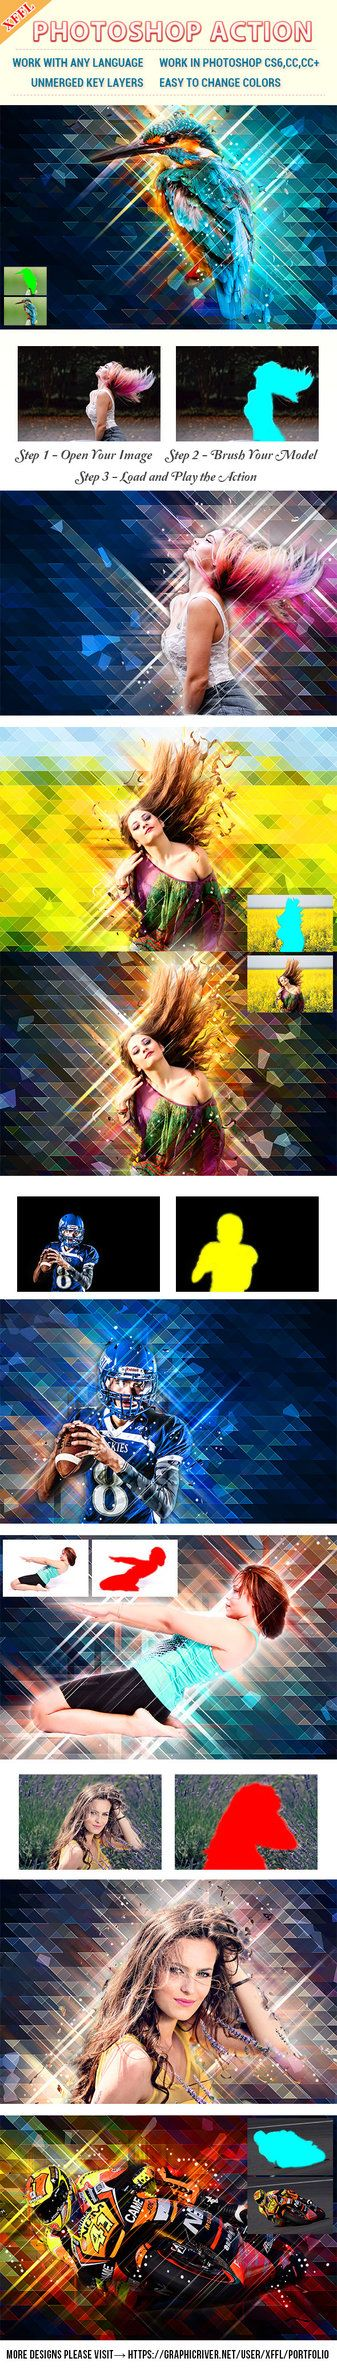 DOWNLOAD: goo.gl/HYaFYvLow Poly Art Photoshop ActionFiles FeaturesPhotoshop ActionWork in Photoshop CS6,CC,CC+Work with any LanguageUnmerged key LayersEasy to Change ColorsUse Images be...